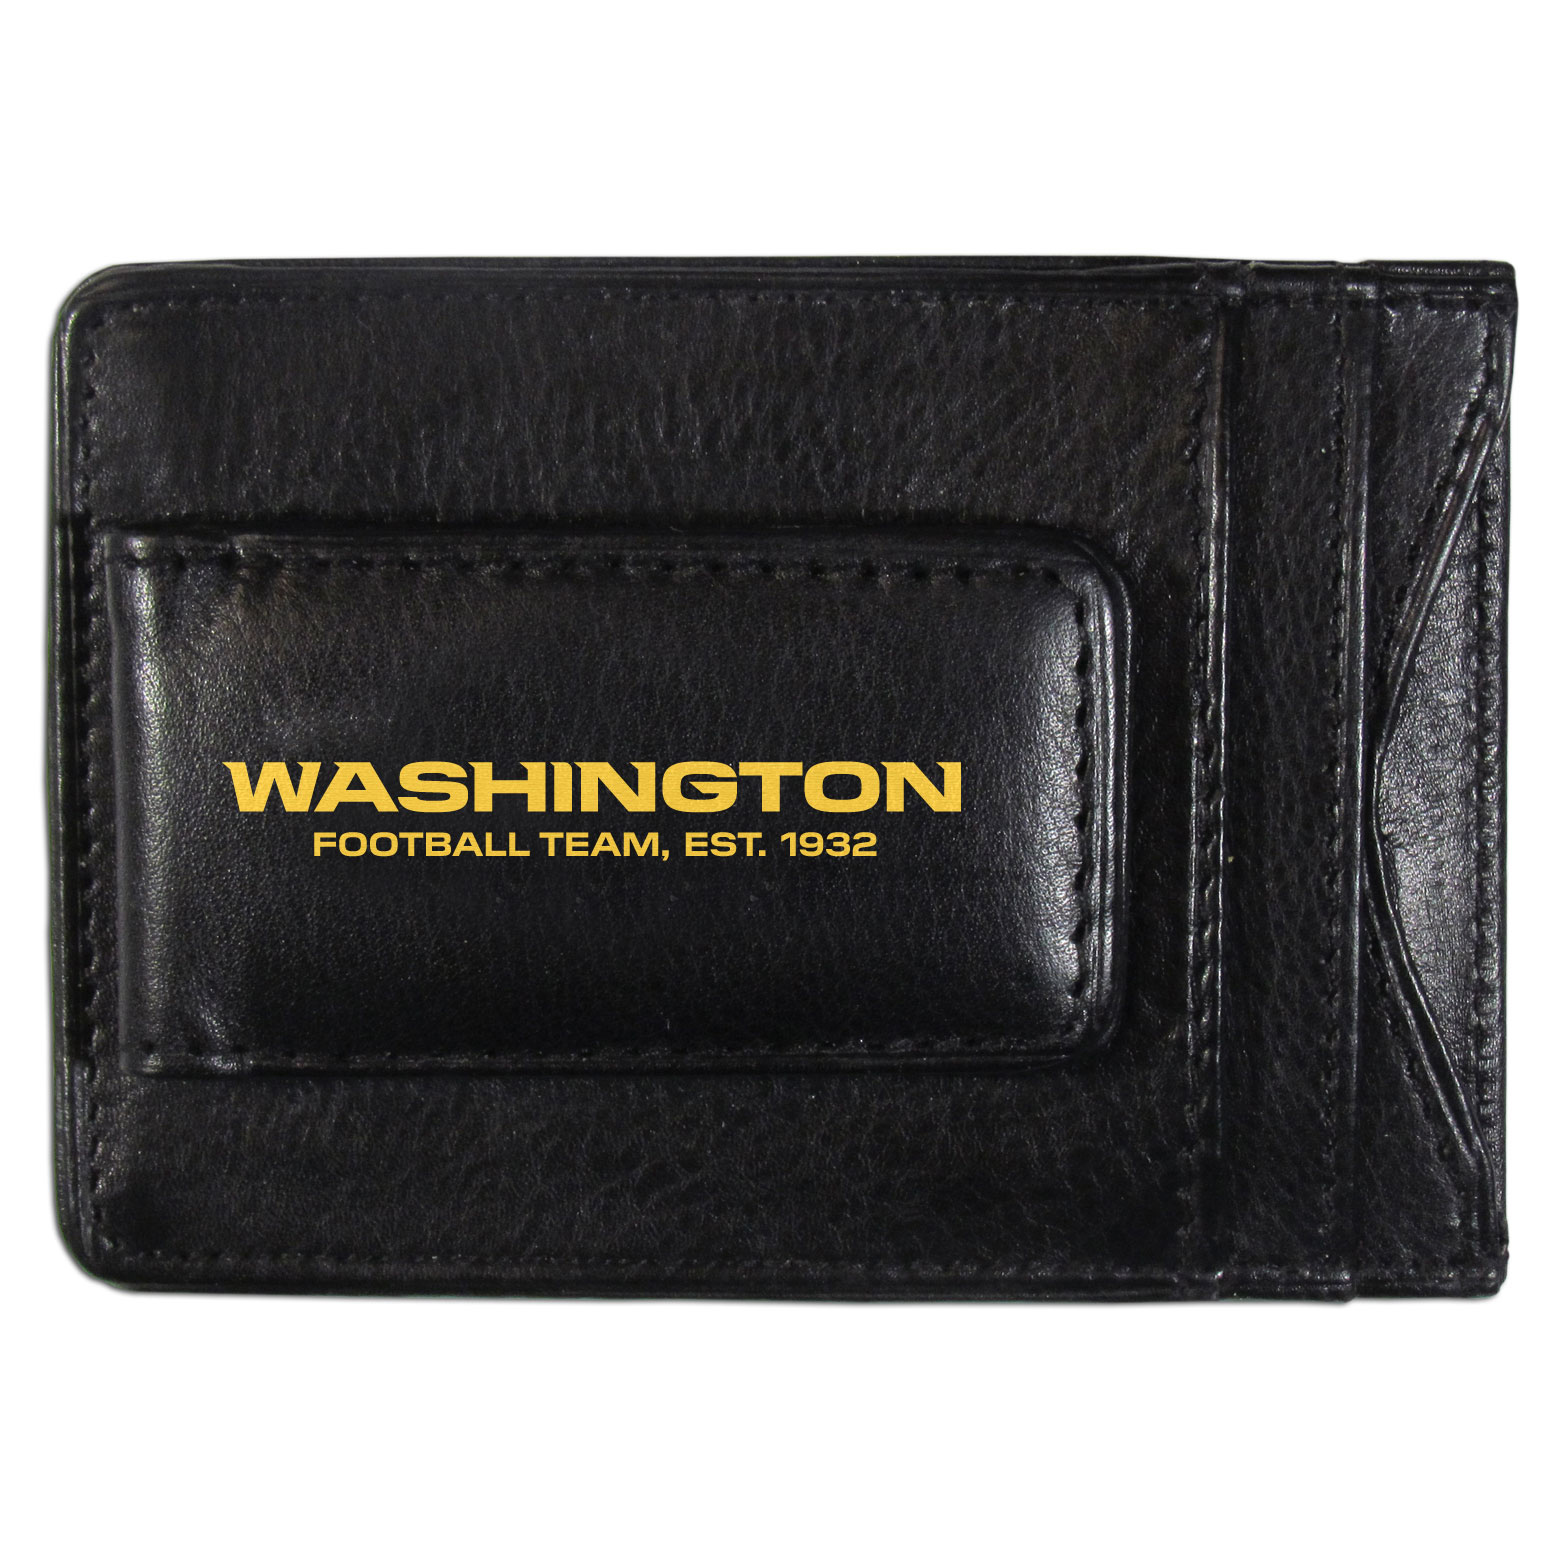 Washington Redskins Logo Leather Cash and Cardholder - This super slim leather wallet lets you have all the benefits of a money clip while keeping the organization of a wallet. On one side of this front pocket wallet there is a strong, magnetic money clip to keep your cash easily accessible and the?Washington Redskins team logo on the front. The versatile men's accessory is a perfect addition to your fan apparel.